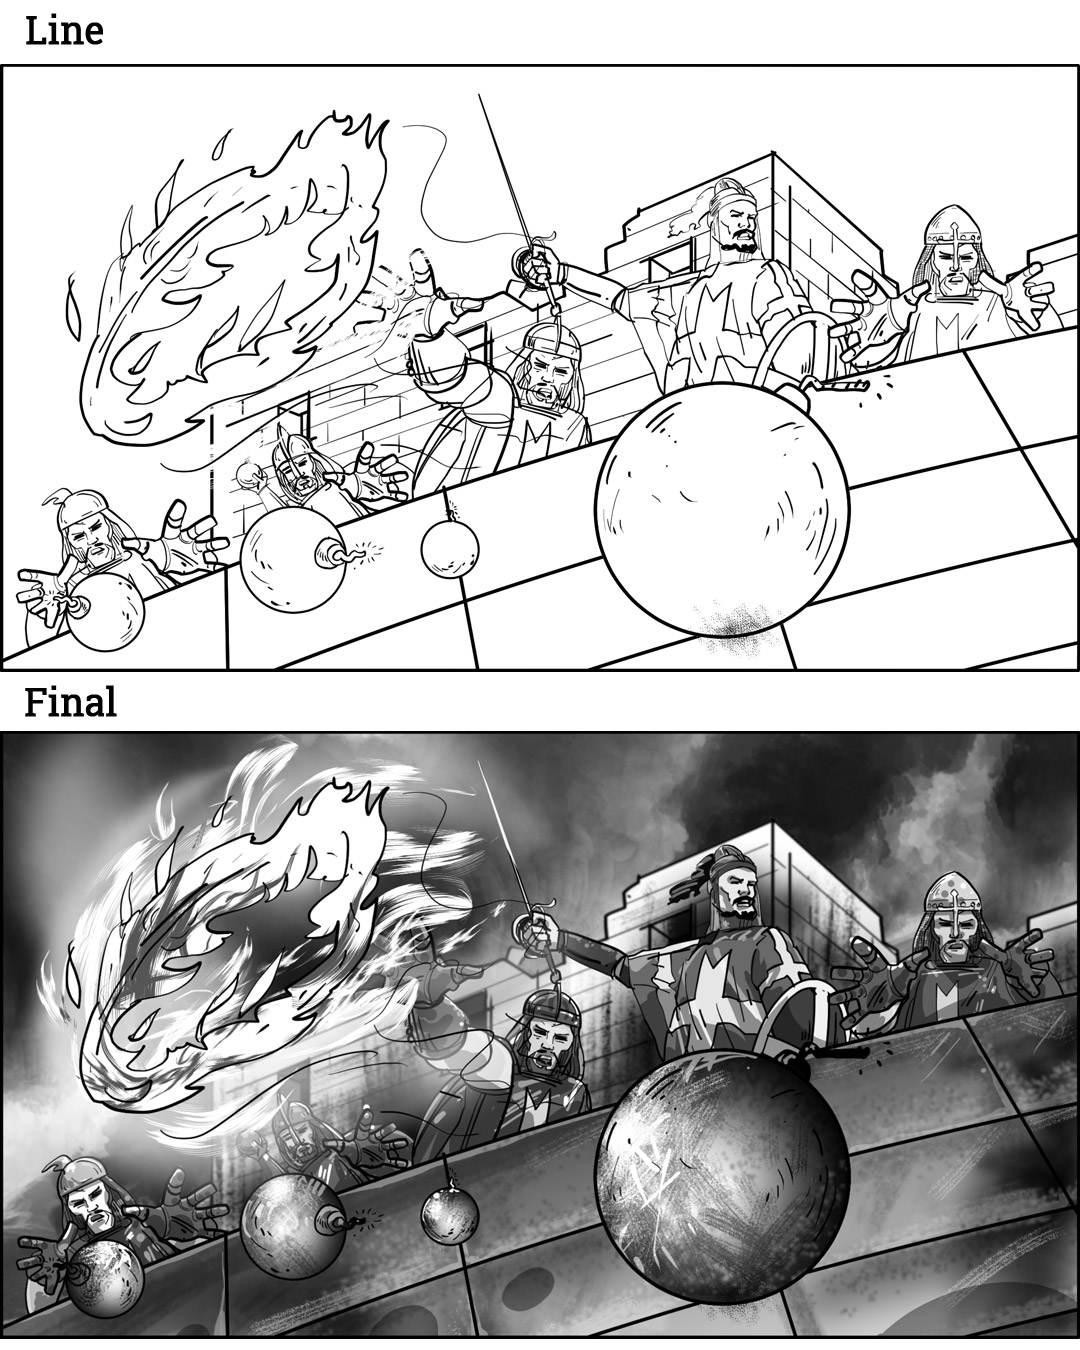 Detail Opening Sequence For Strategic Game Storyboards-10